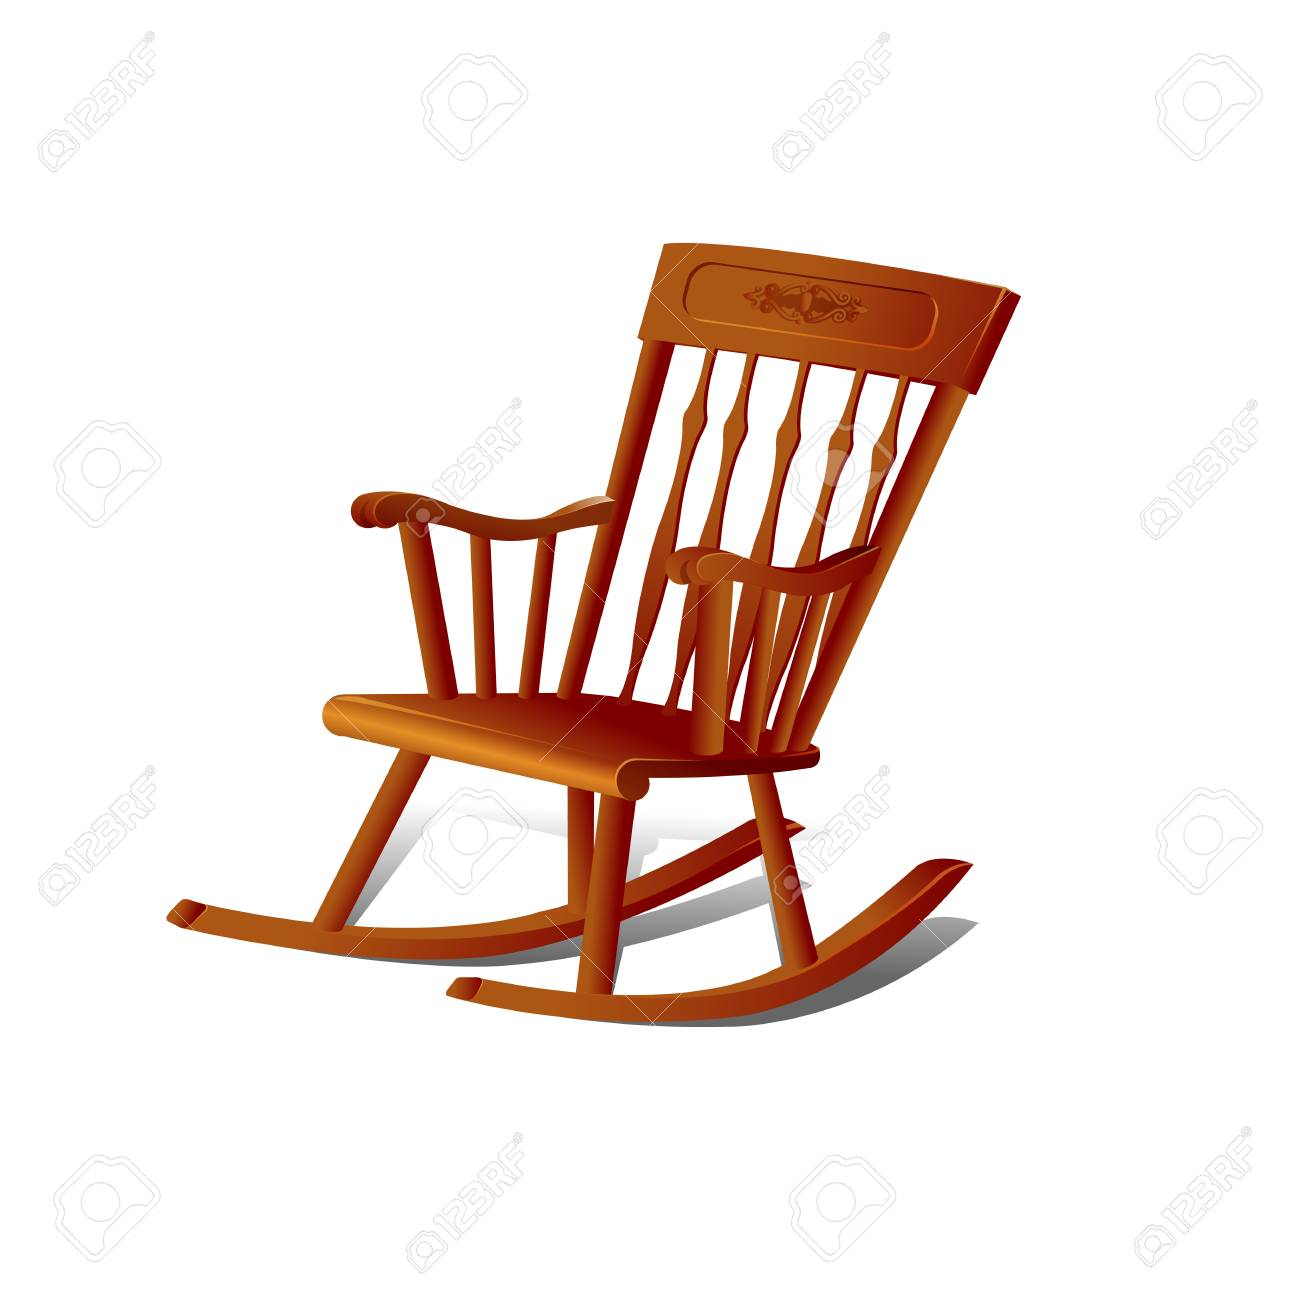 Illustration of a Rocking Chair. Isolated on White Background - 77612651